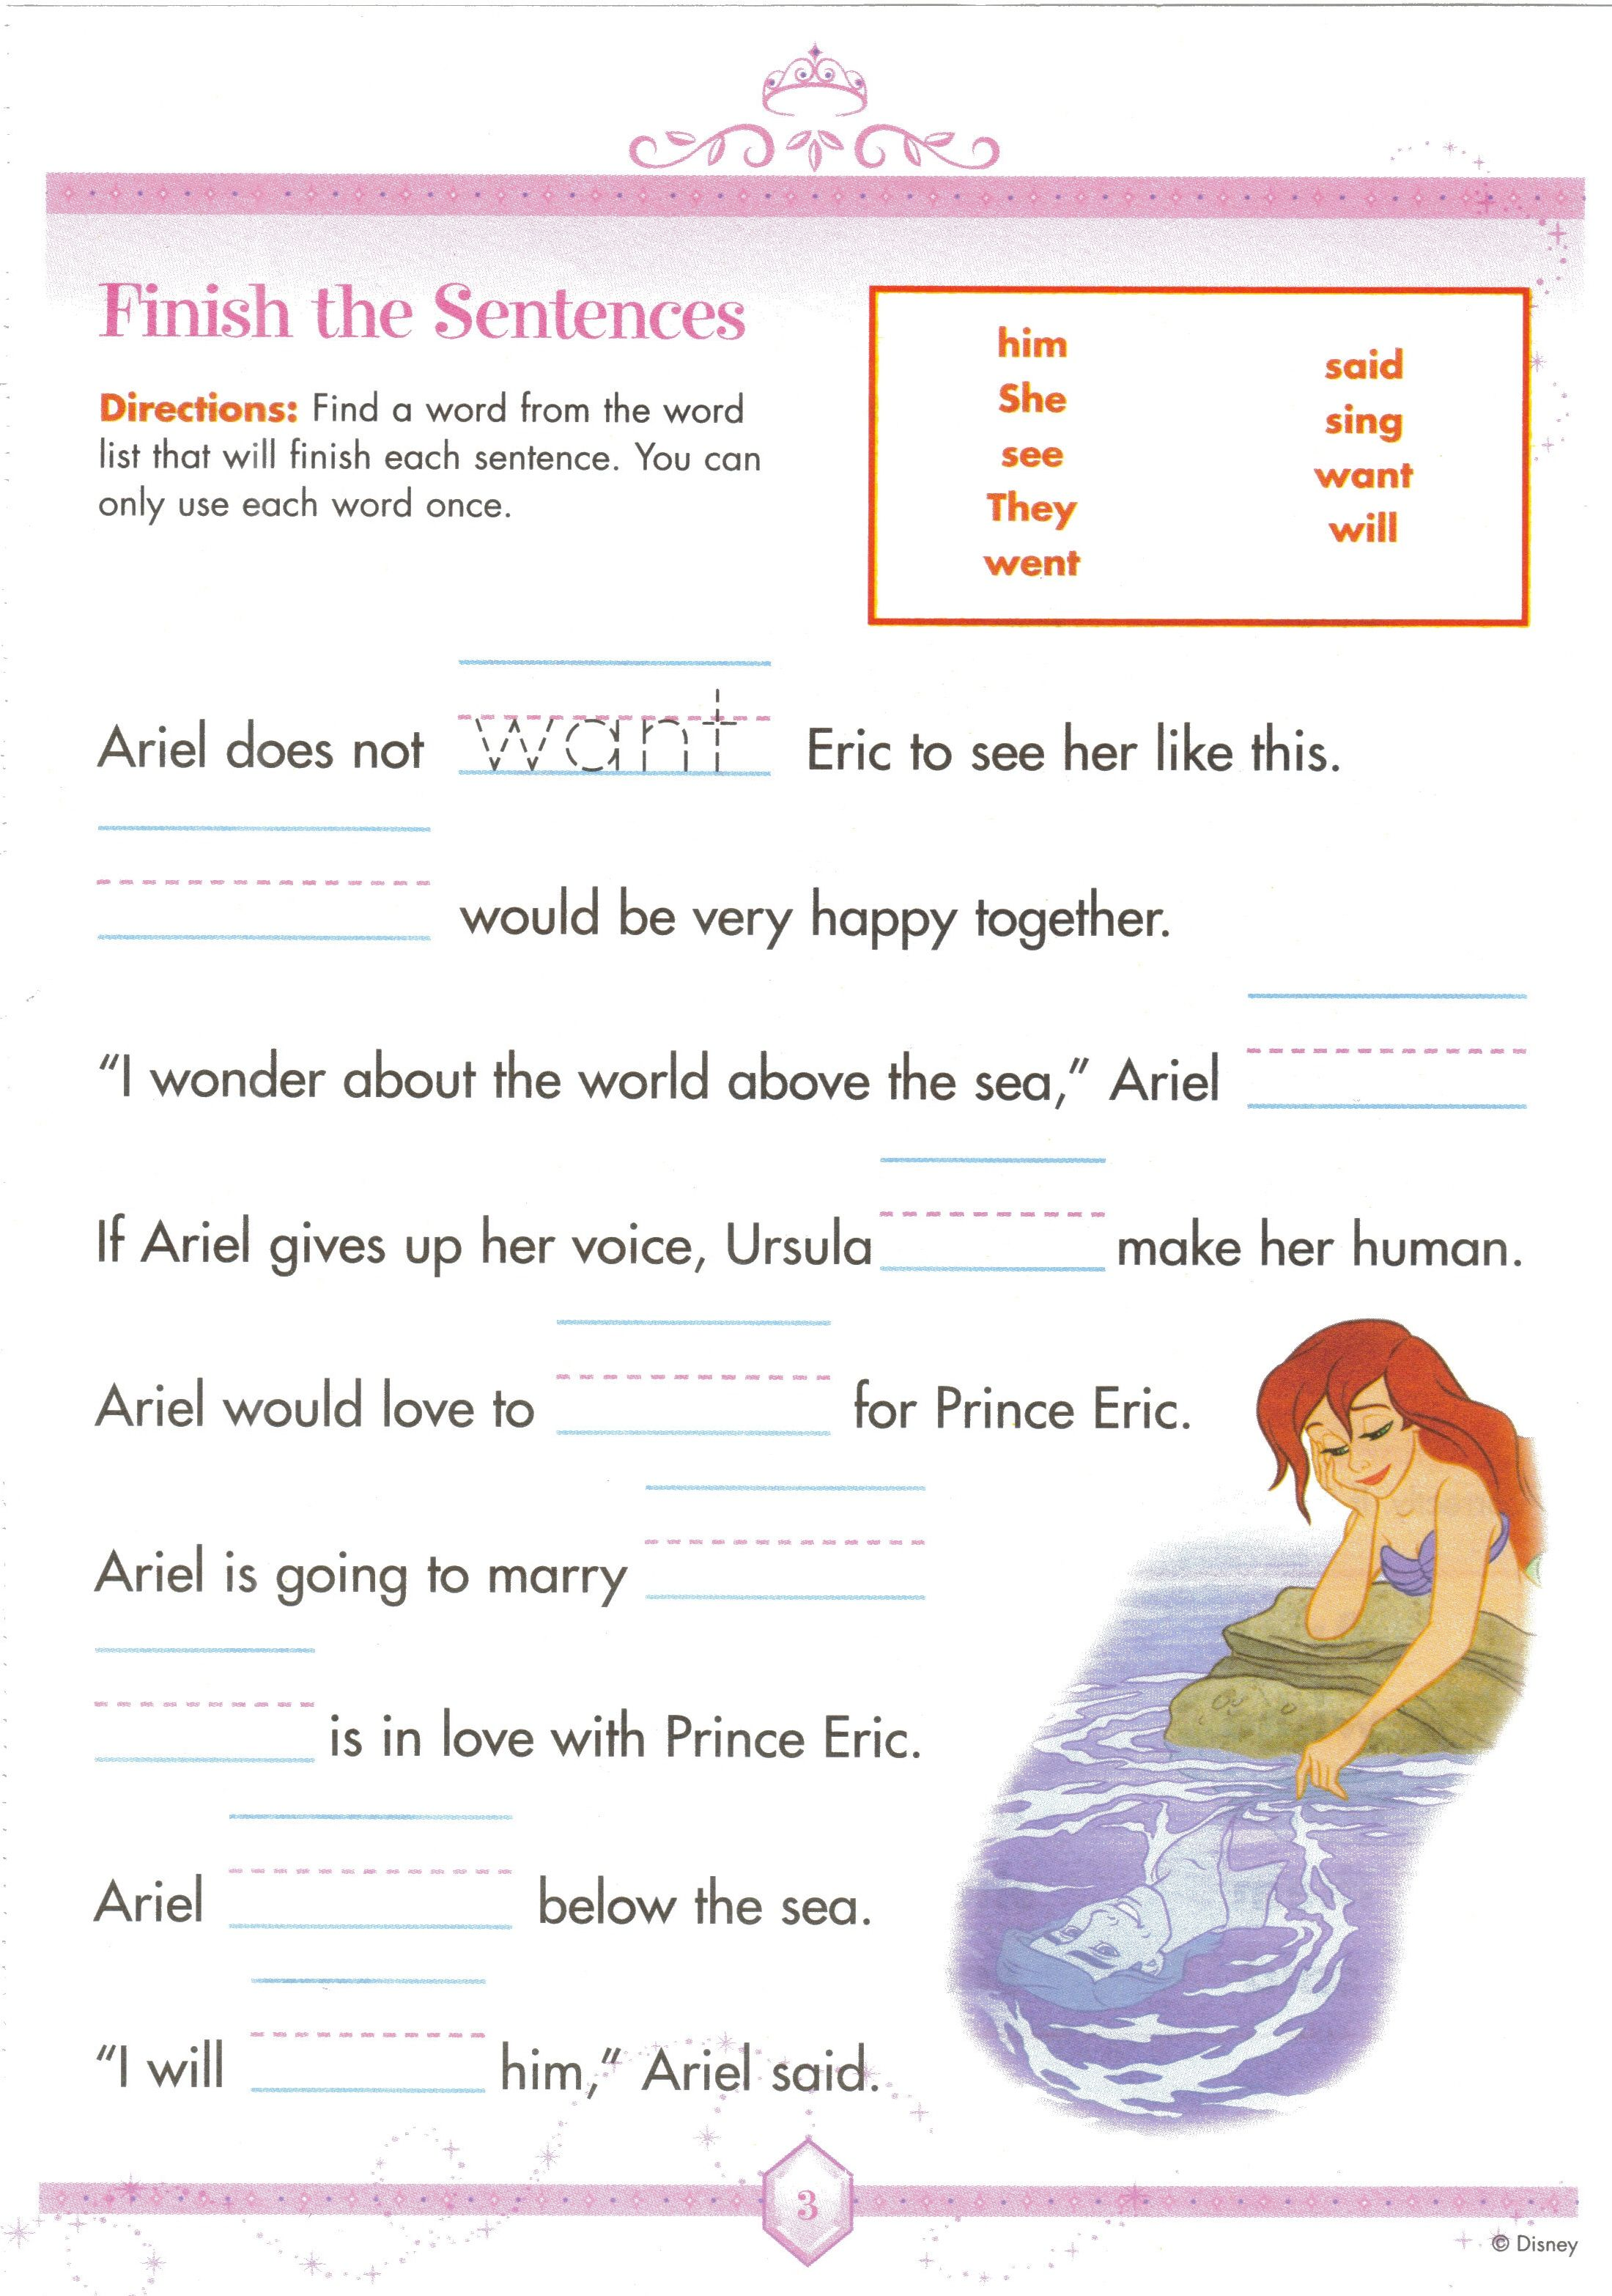 Weirdmailus  Fascinating  Images About Worksheets On Pinterest  Fun Facts For Kids  With Fascinating  Images About Worksheets On Pinterest  Fun Facts For Kids Earth Day Worksheets And Jungles With Astonishing Free Mlk Worksheets Also Free Printable Th Grade Grammar Worksheets In Addition Grade K Worksheets And Addition Fact Family Worksheets As Well As Free Th Grade Social Studies Worksheets Additionally Simile Metaphor Worksheets From Pinterestcom With Weirdmailus  Fascinating  Images About Worksheets On Pinterest  Fun Facts For Kids  With Astonishing  Images About Worksheets On Pinterest  Fun Facts For Kids Earth Day Worksheets And Jungles And Fascinating Free Mlk Worksheets Also Free Printable Th Grade Grammar Worksheets In Addition Grade K Worksheets From Pinterestcom